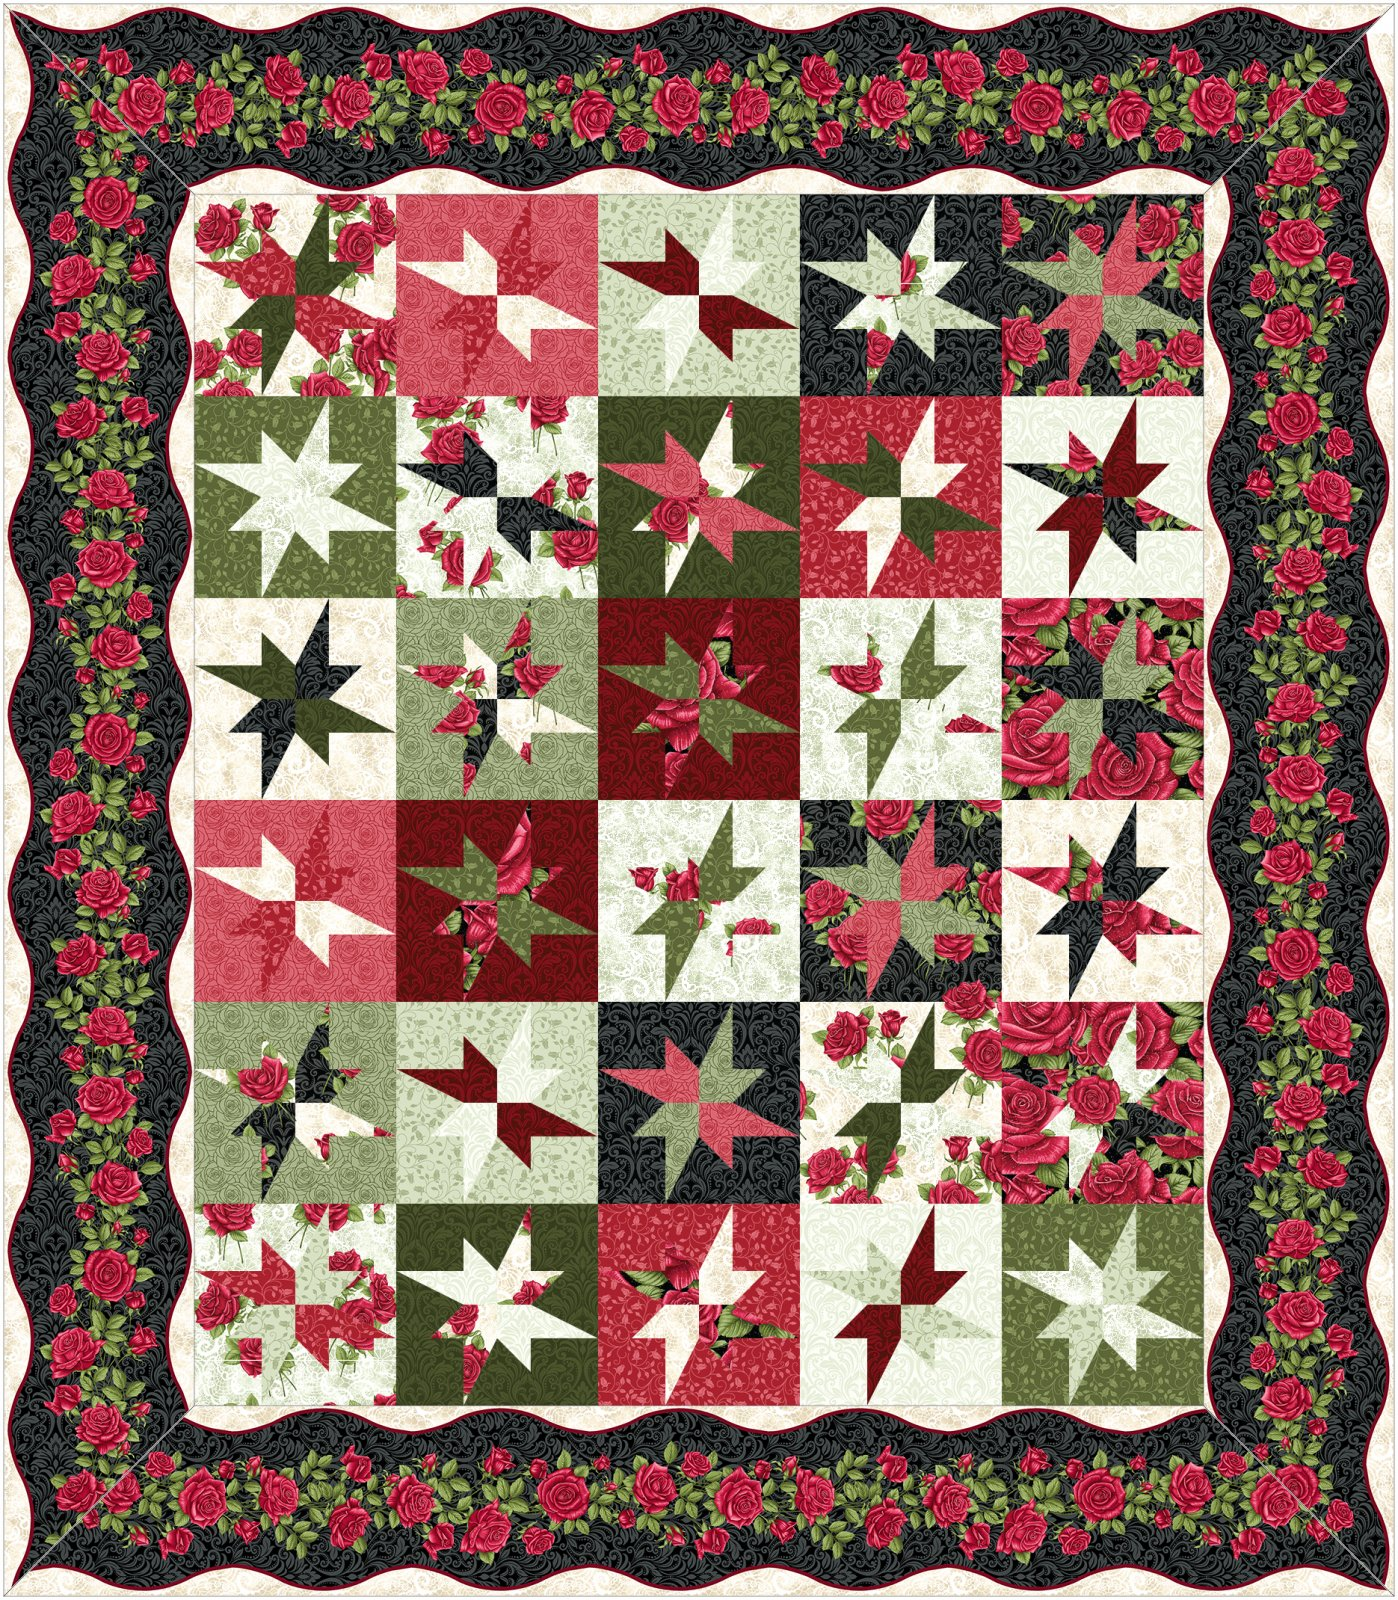 Eccentric Star Kit - Dark border - by Animas Quilts